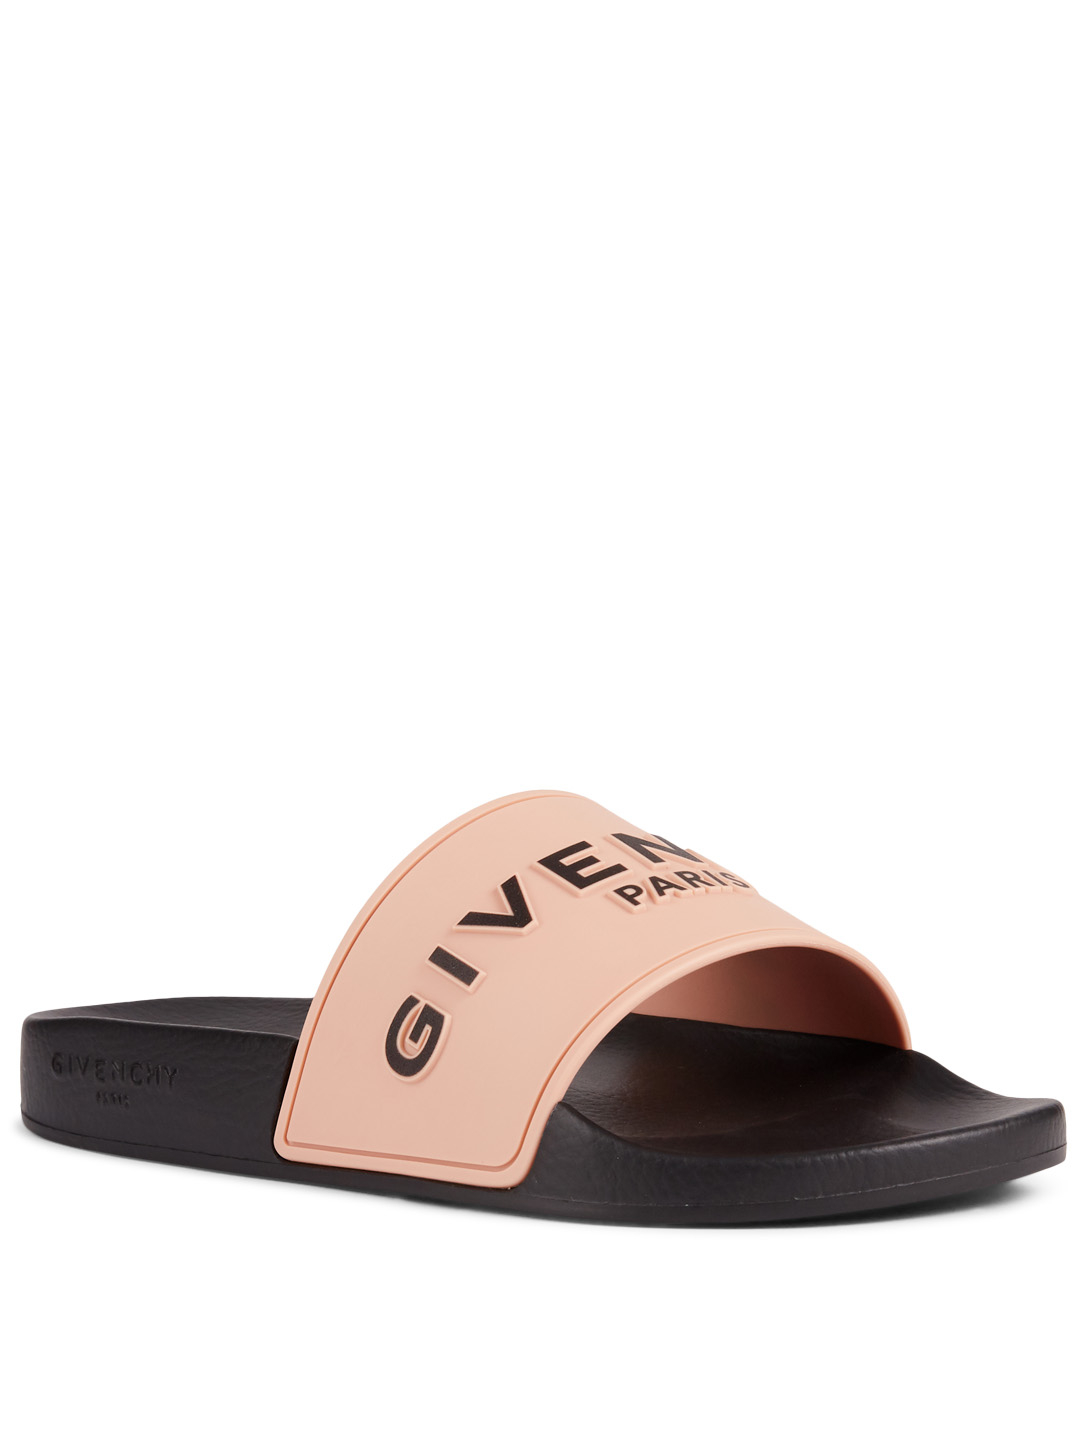 GIVENCHY Logo Slide Sandals Women's Pink